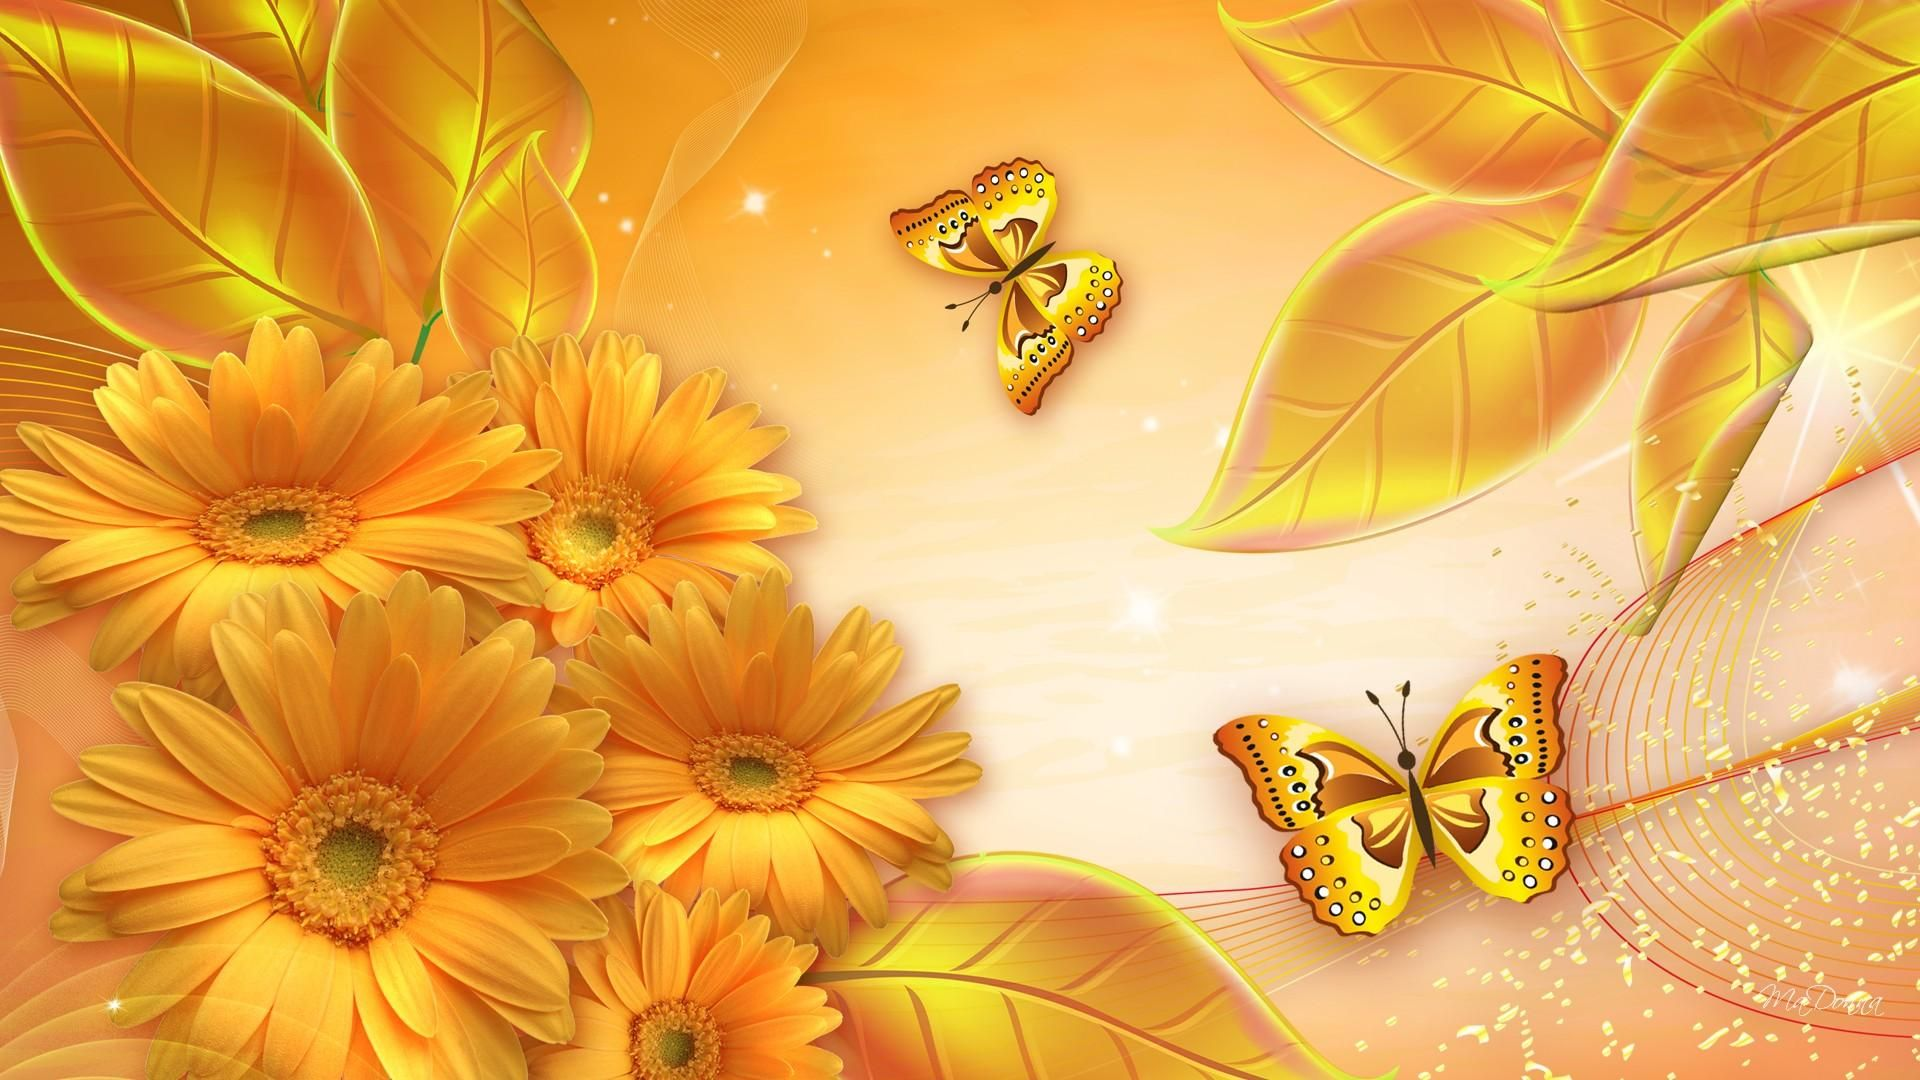 Good Wallpaper High Quality Butterfly - f1b42060ba2094ea38abea275fa4de7c  Best Photo Reference_53677.jpg